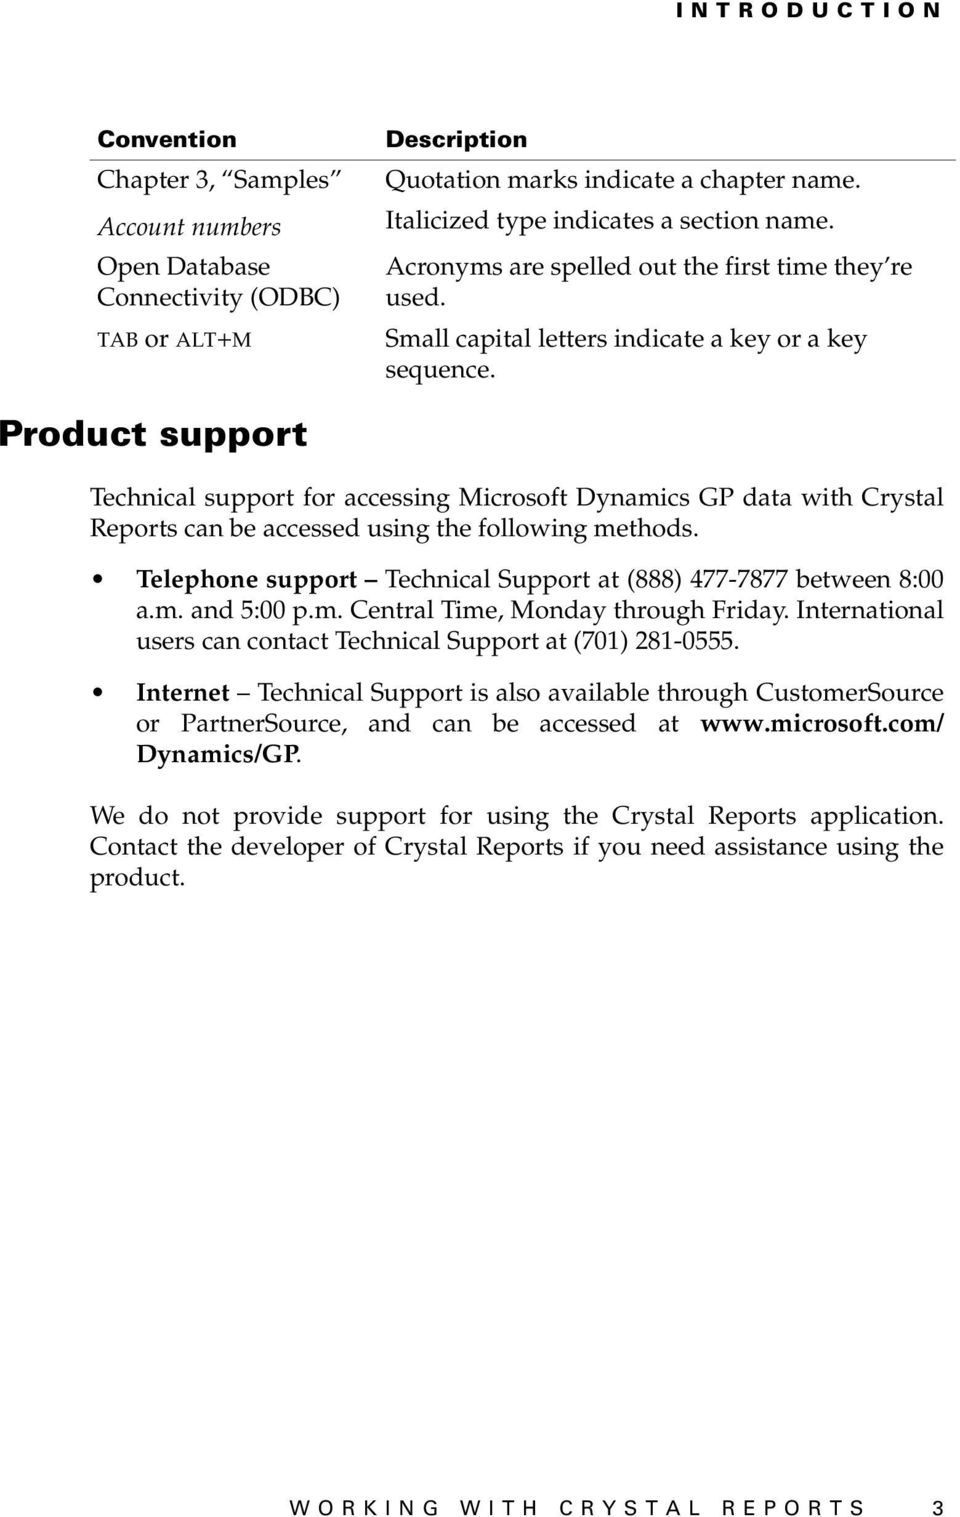 Product support Technical support for accessing Microsoft Dynamics GP data with Crystal Reports can be accessed using the following methods.